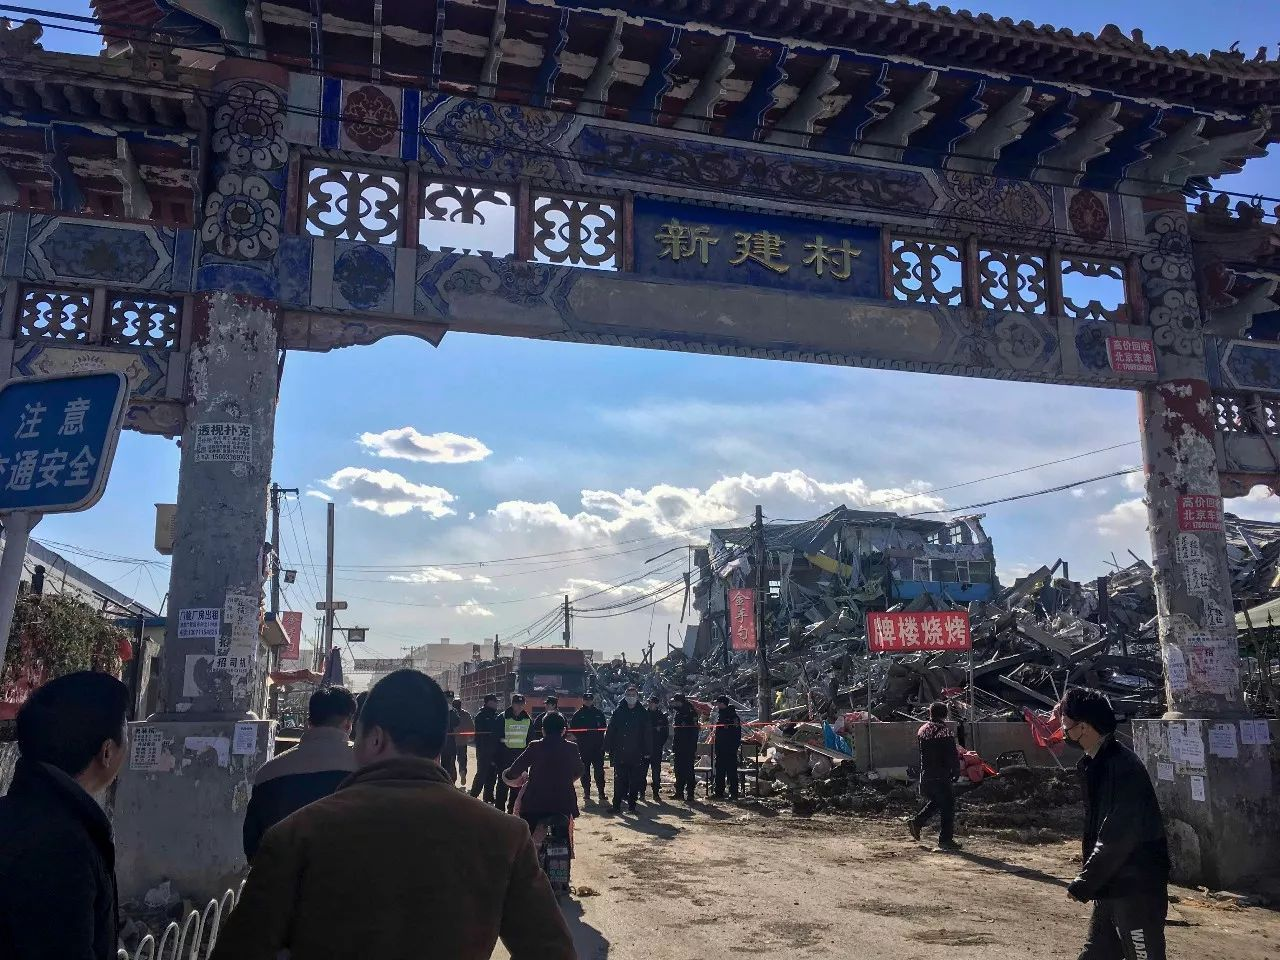 China, Beijing, Daxing, Xinjian Cun, where the government has destroyed the neighbourhood of migrant workers and evicted everyone. South Gate